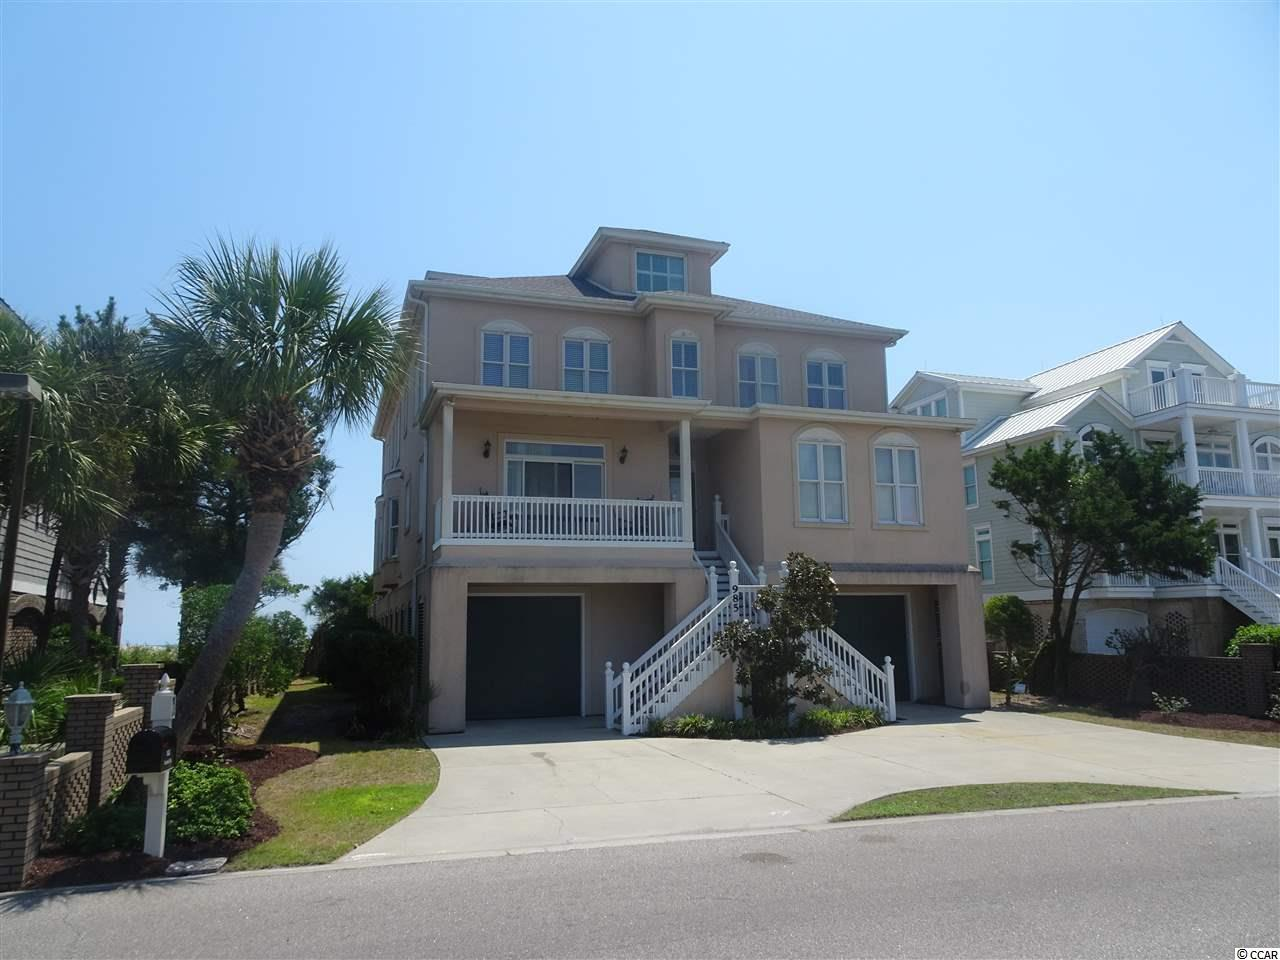 985 Norris Dr., Pawleys Island, South Carolina